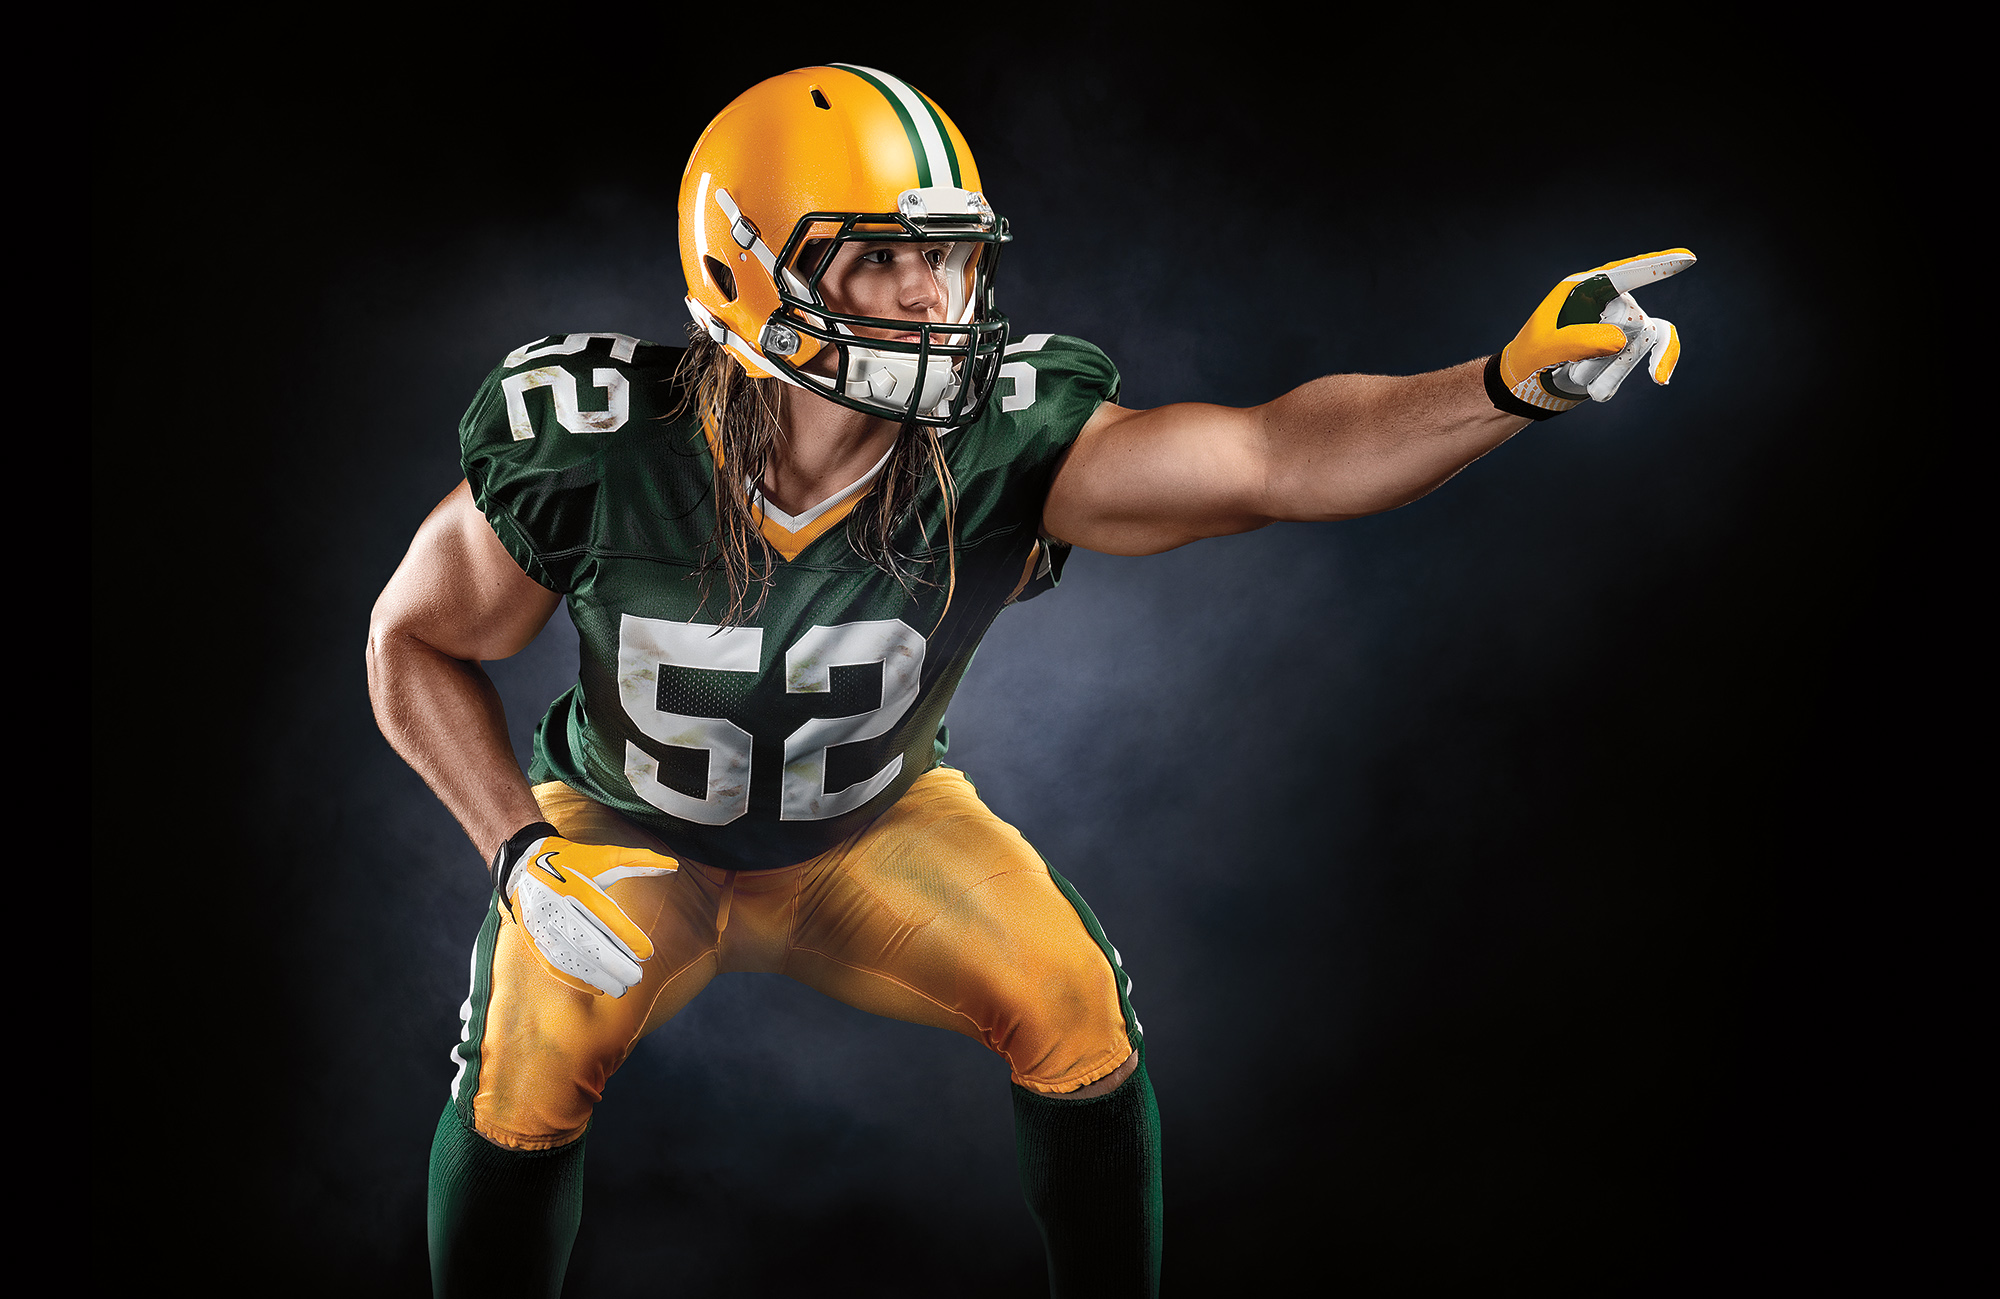 Clay Matthews Photoshoot by Blair Bunting Advertising Photographer